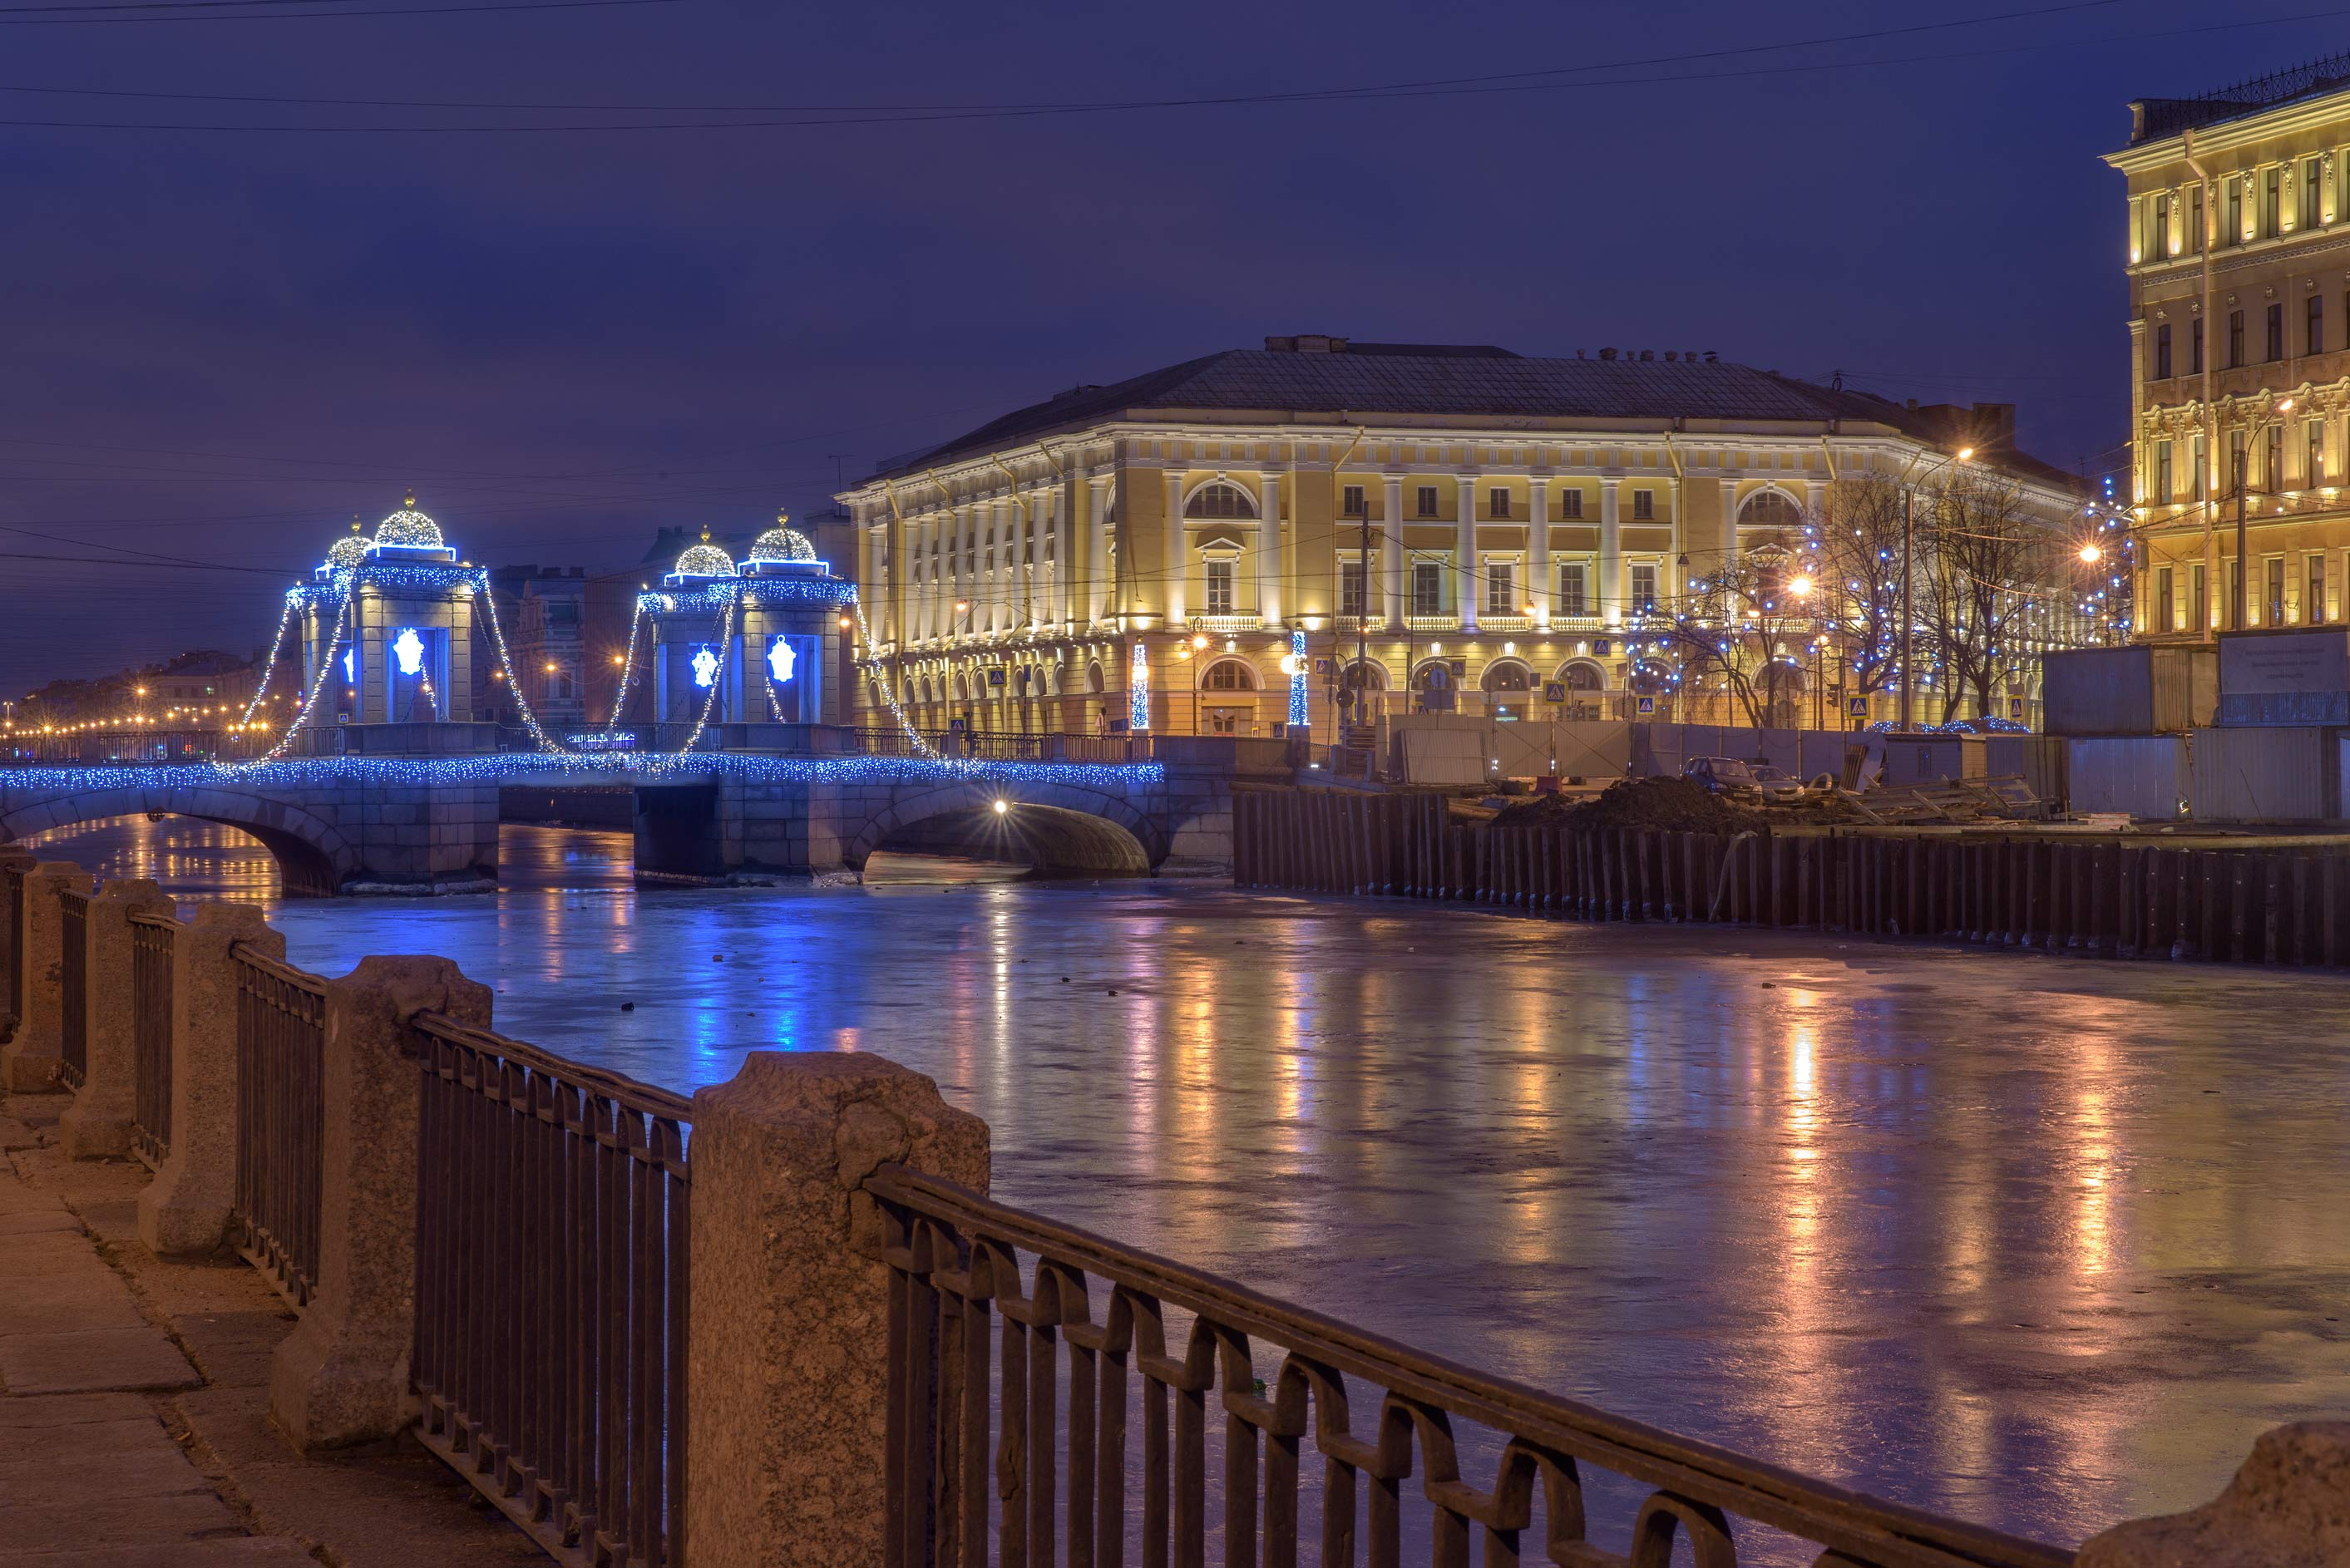 Lomonosov Bridge and Fontanka River at morning. St.Petersburg, Russia